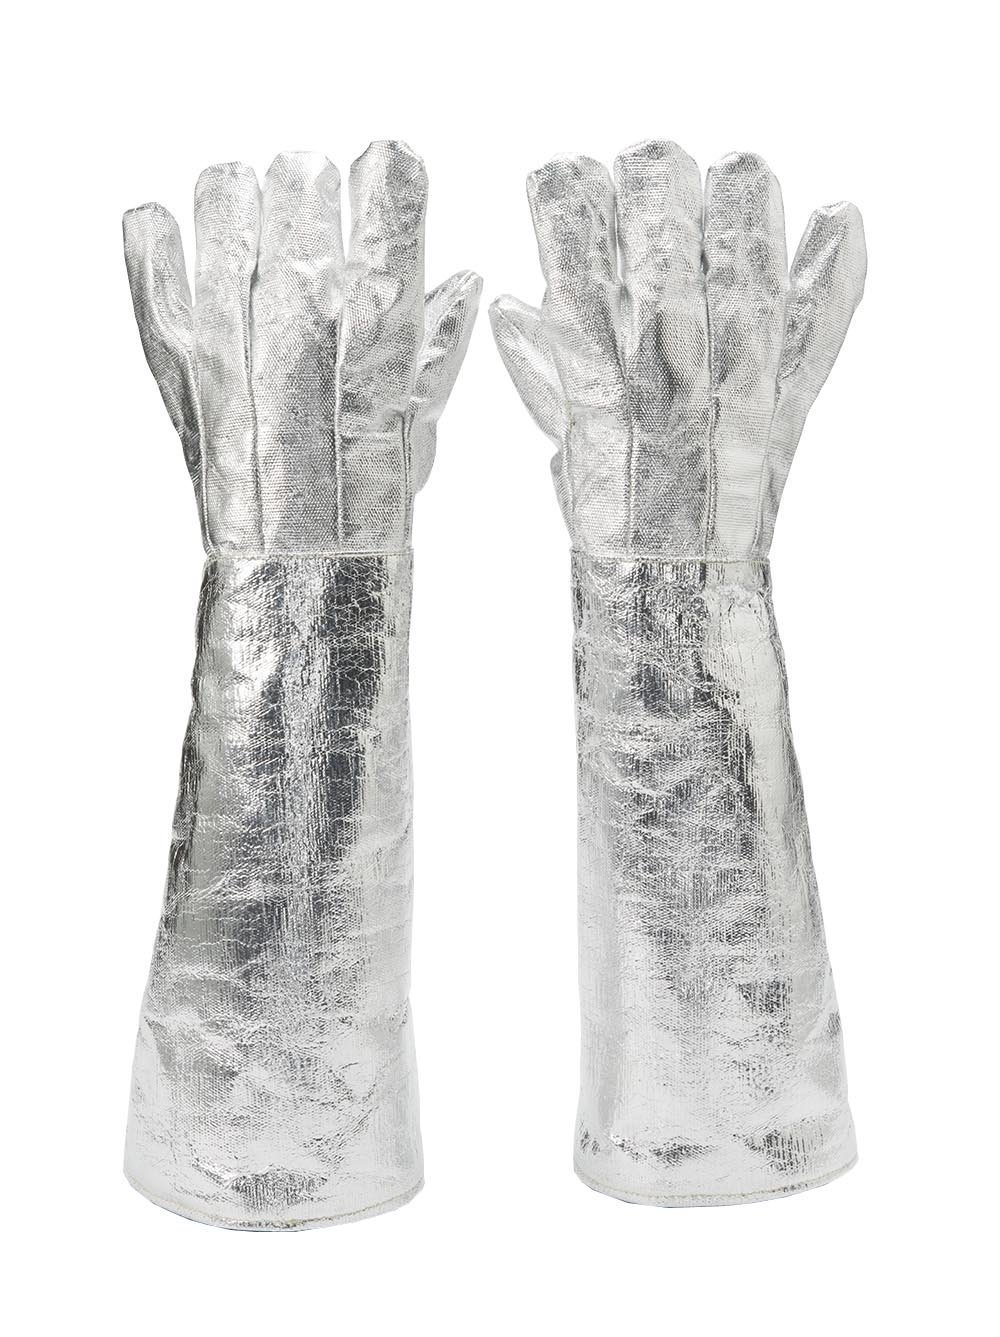 X-sunshine 55CM/21.6-inch Safety Aluminized Carbon Heat Resistant Glove Welding Work Protection Long Gloves Oven (Large-21.6'')